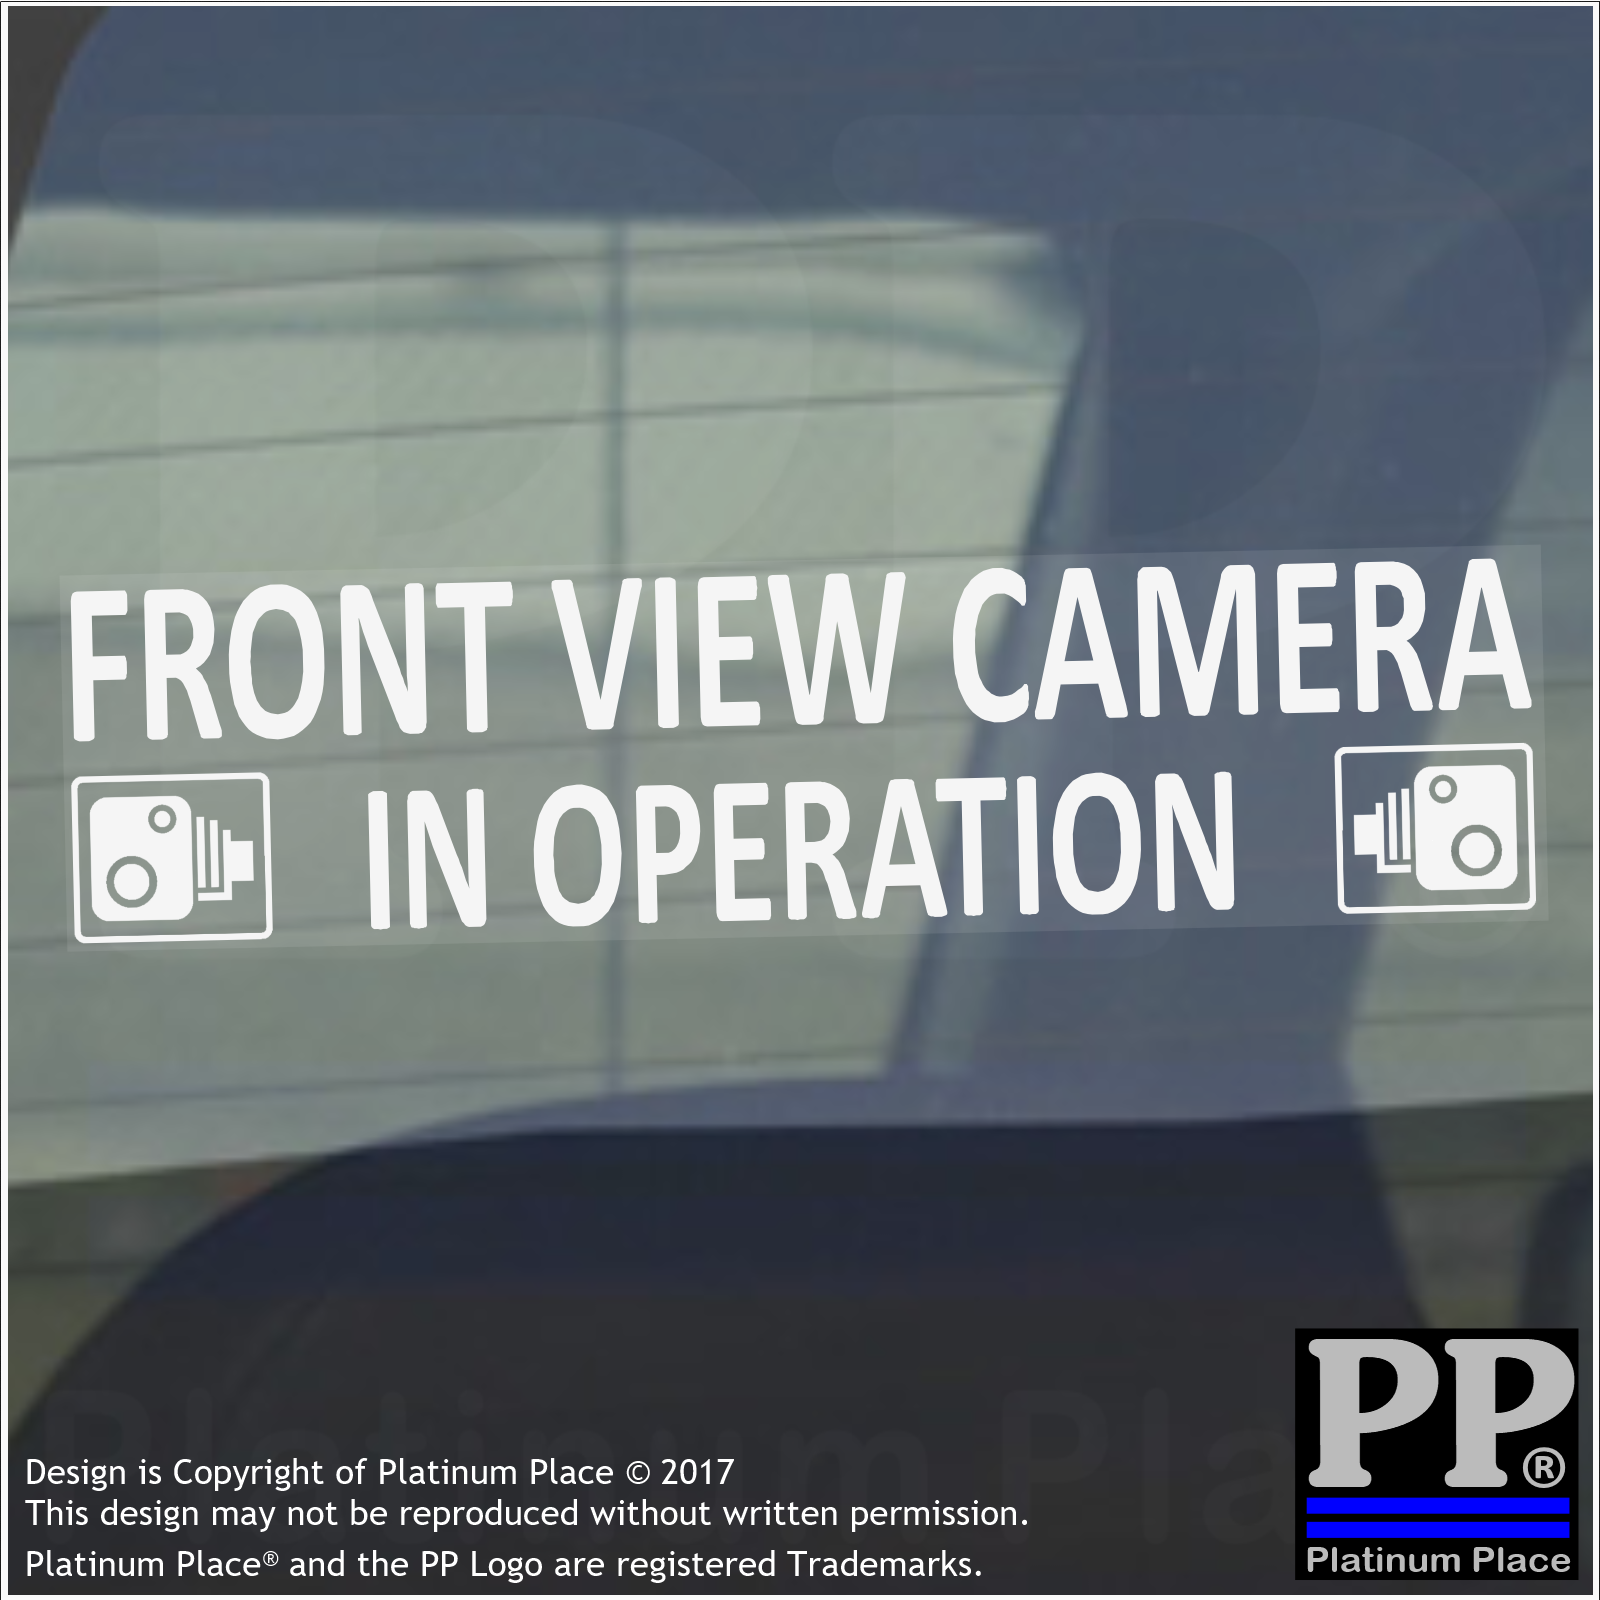 1 x Front View Camera In Operation Stickers-WINDOW CCTV Signs-Van